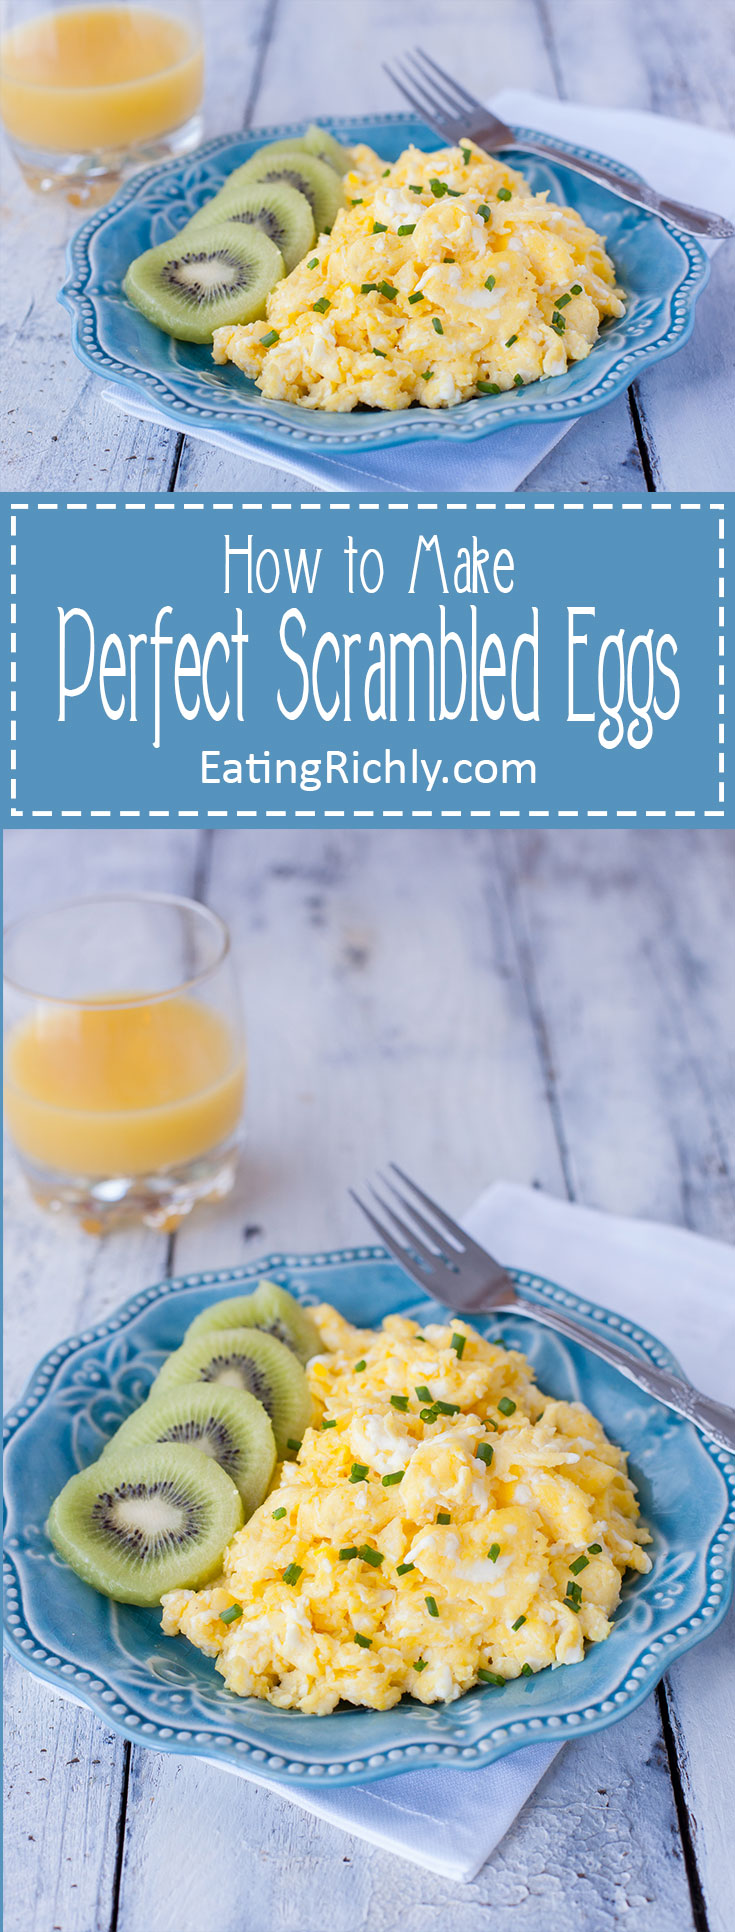 Watch a two year old teach you how to scramble eggs perfectly, with step by step photos and video. You 'll learn how to scramble eggs like a pro! Part of #MiniChefMondays on EatingRichly.com